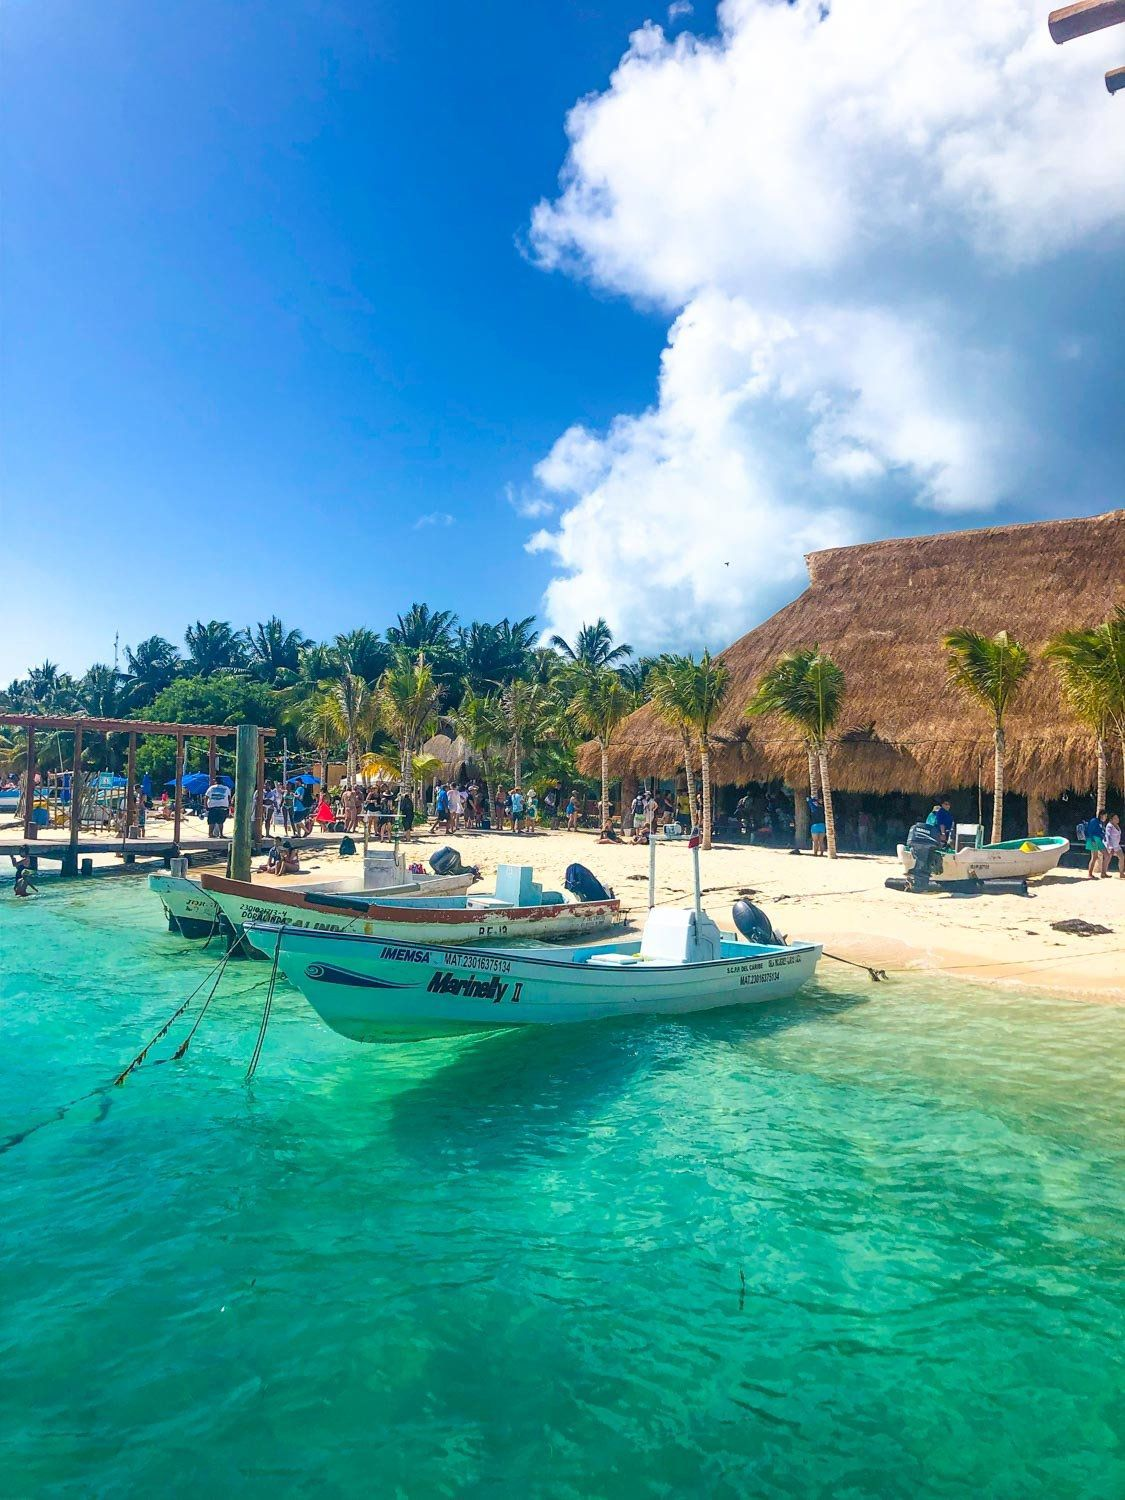 Cancun, Mexico - Best Hot Places To Visit in February